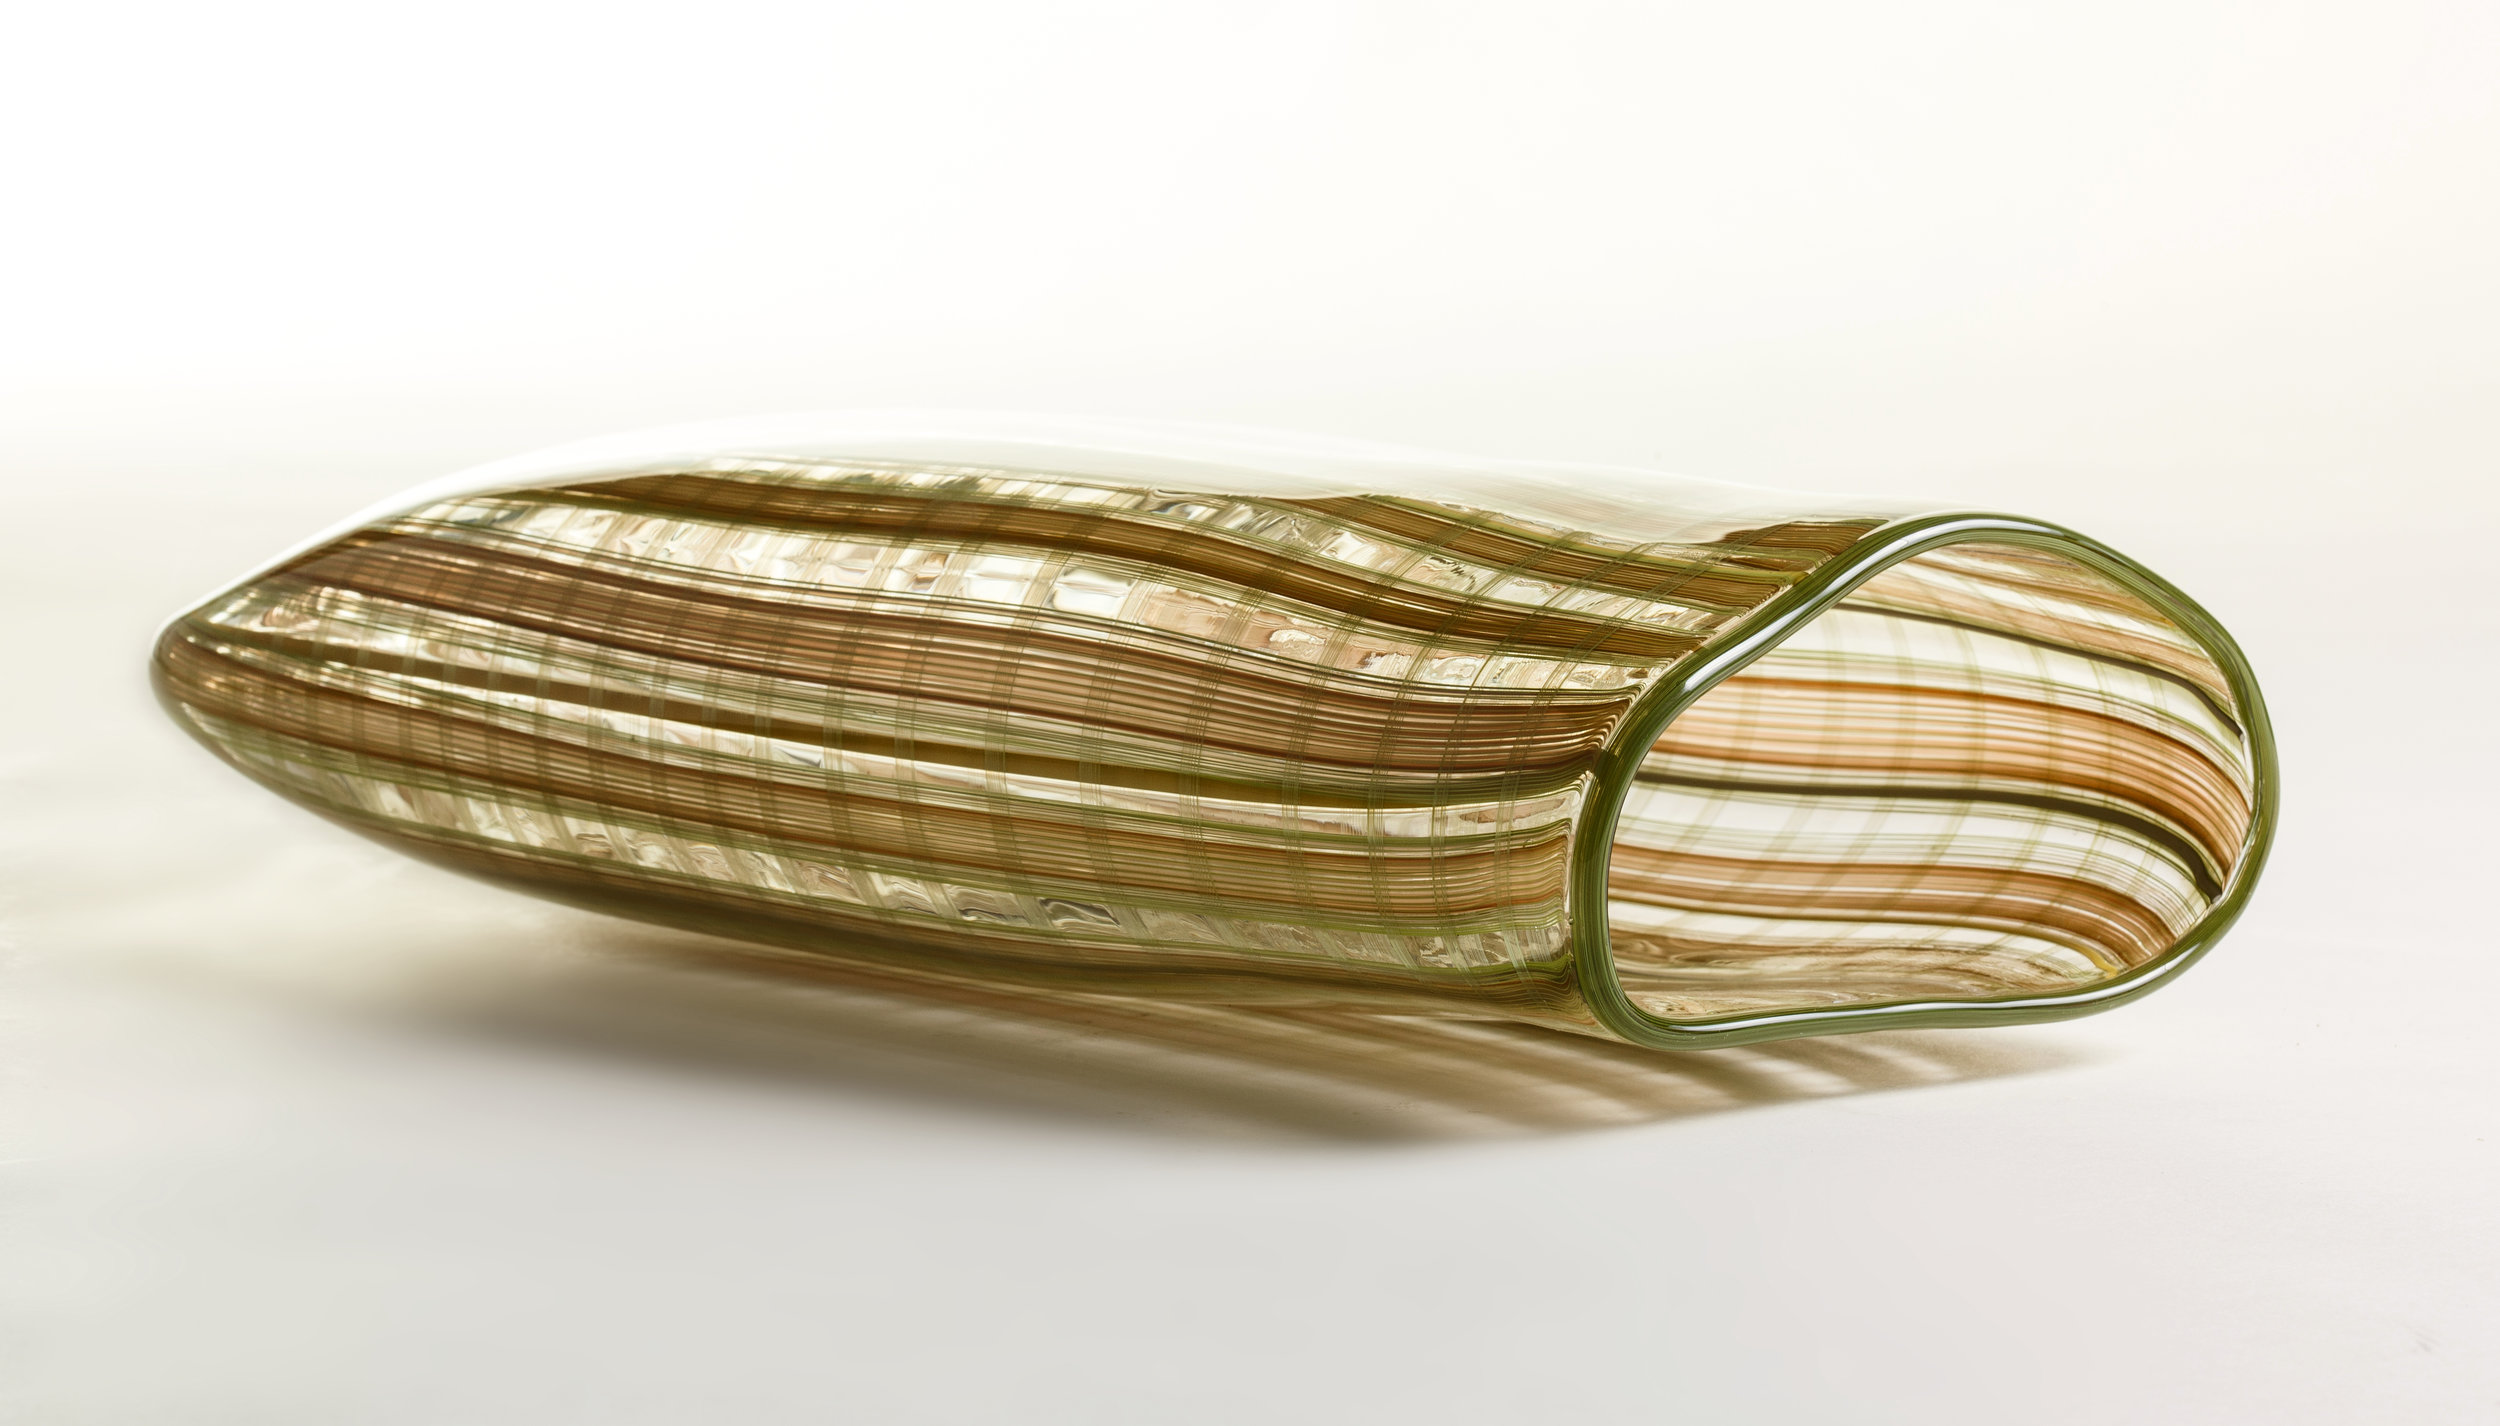 Jenni Kemarre Martiniello  Long Weave Dillibag  – hot blown glass with canes, 26 x 35 x 9 cm, 2017   EMAIL INQUIRY